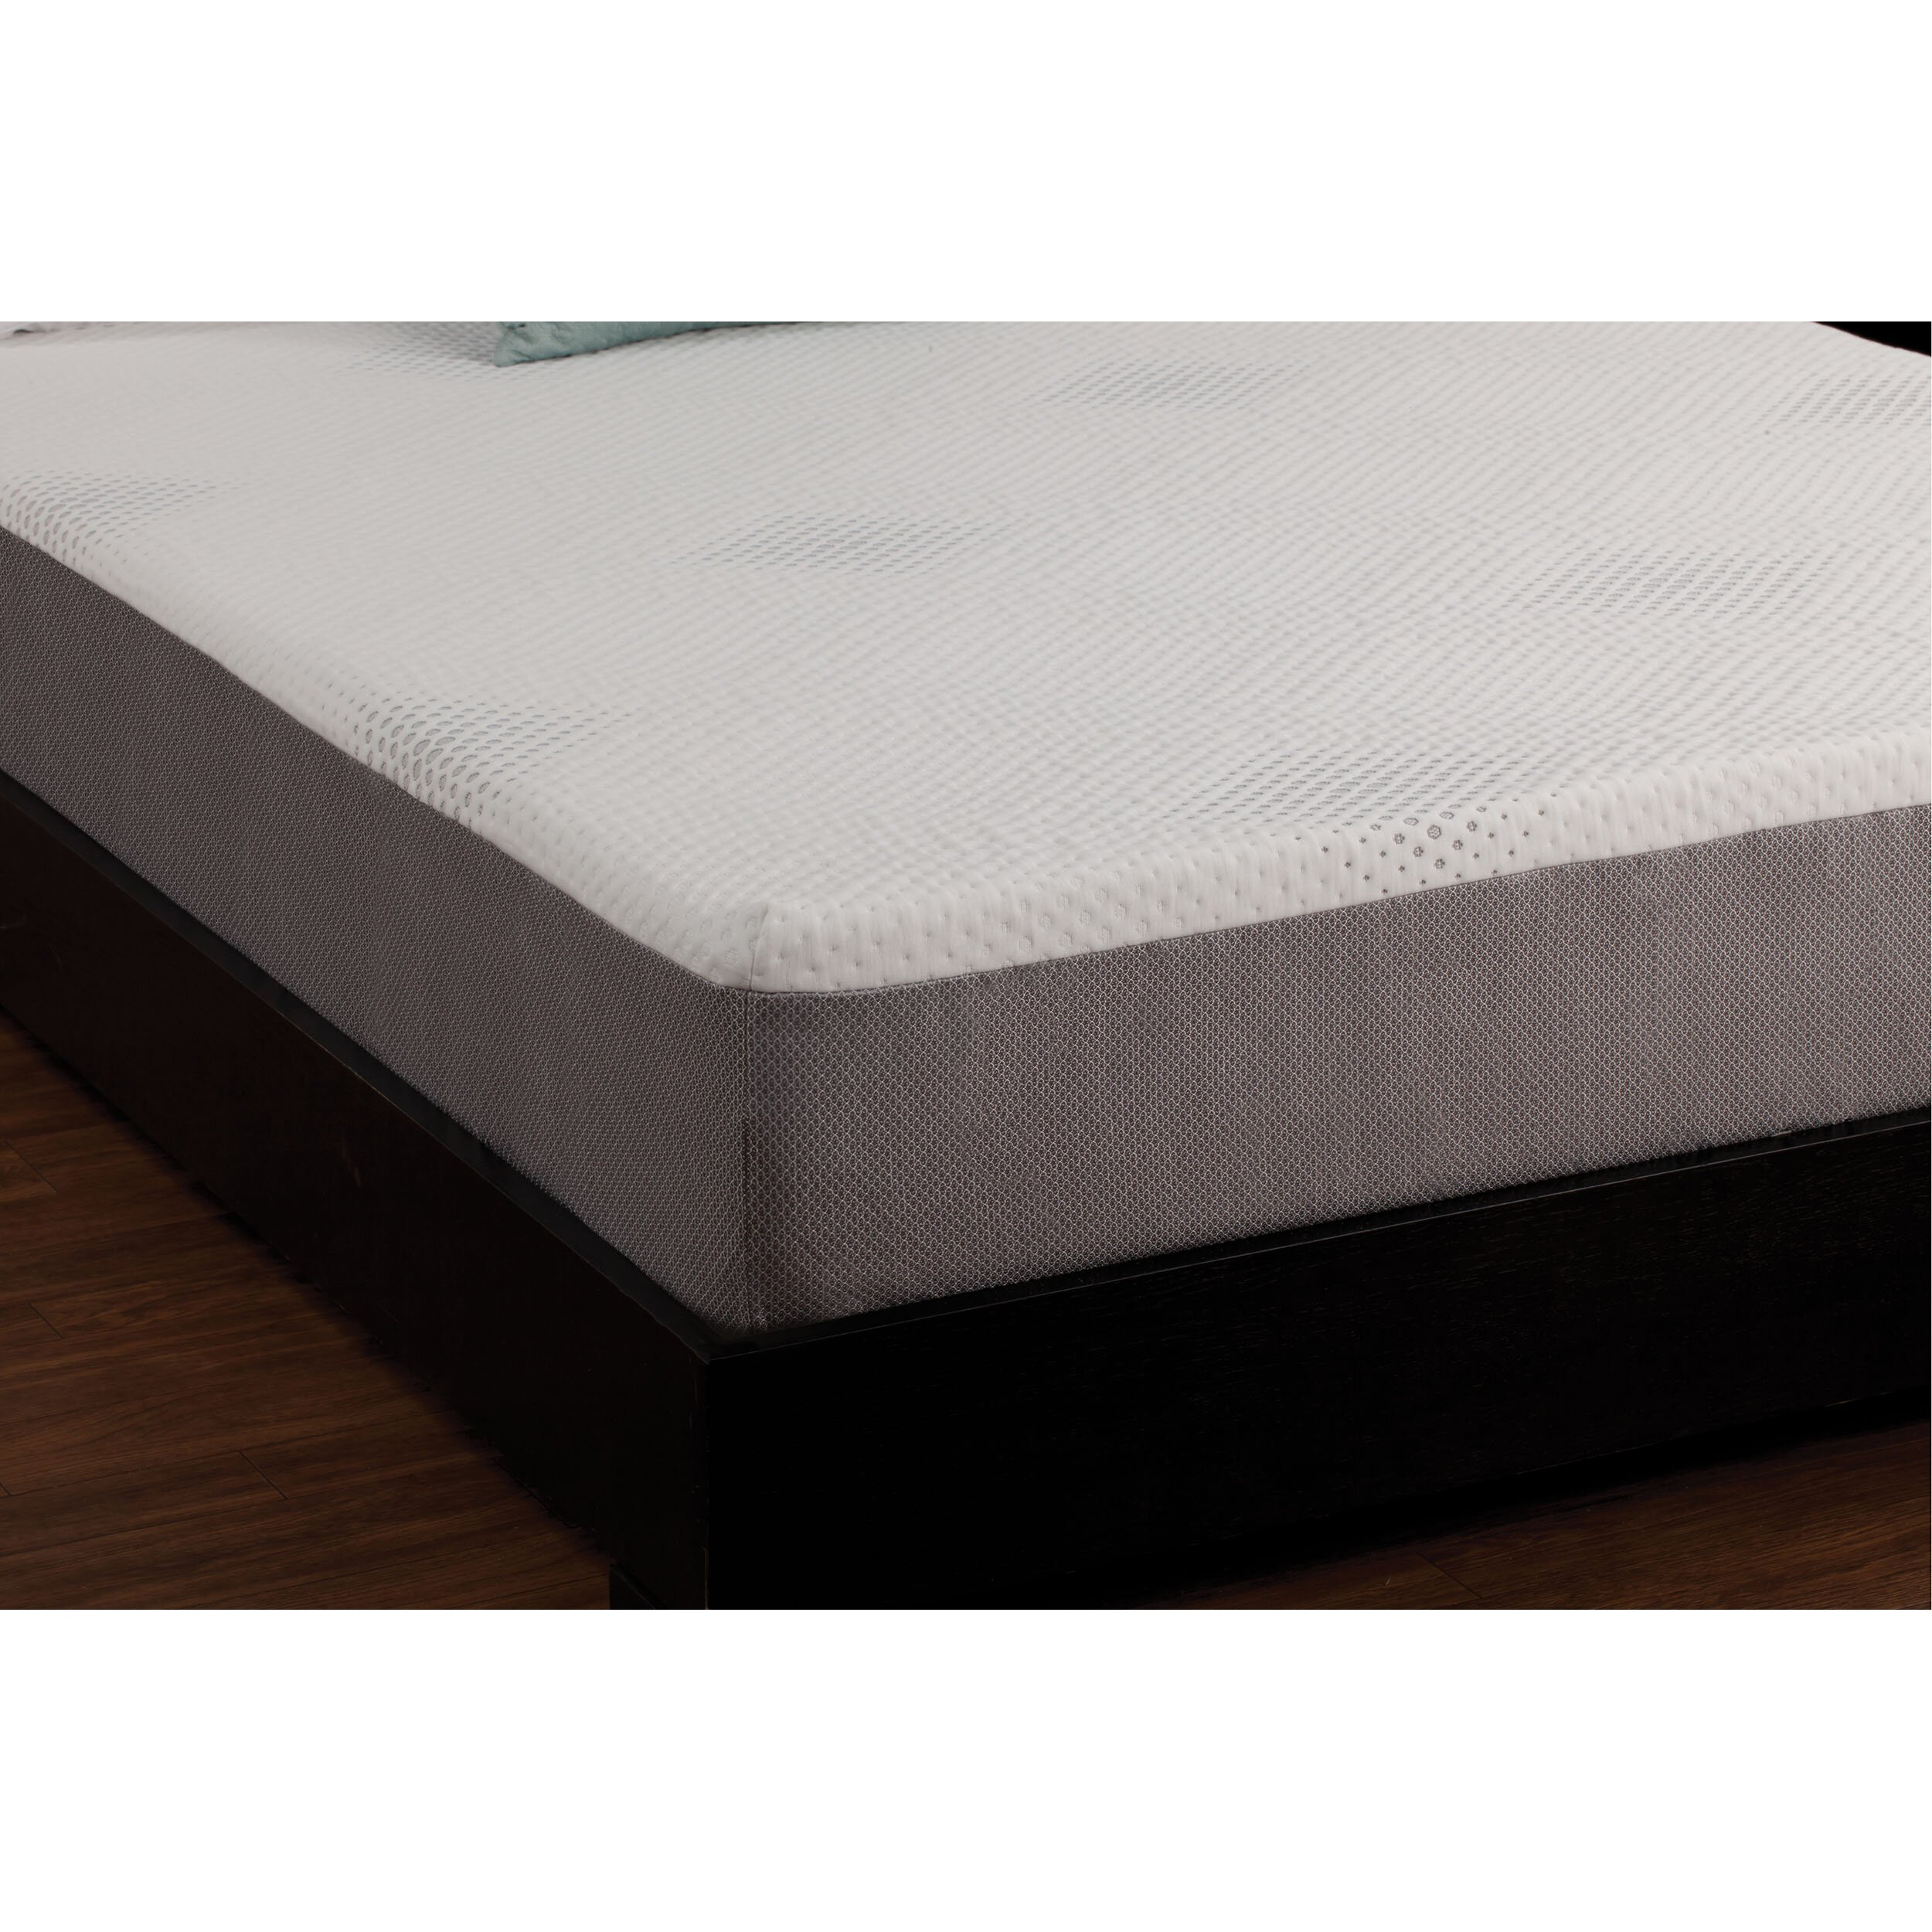 Sealy Posturepedic 10 Memory Foam Mattress Reviews Wayfair